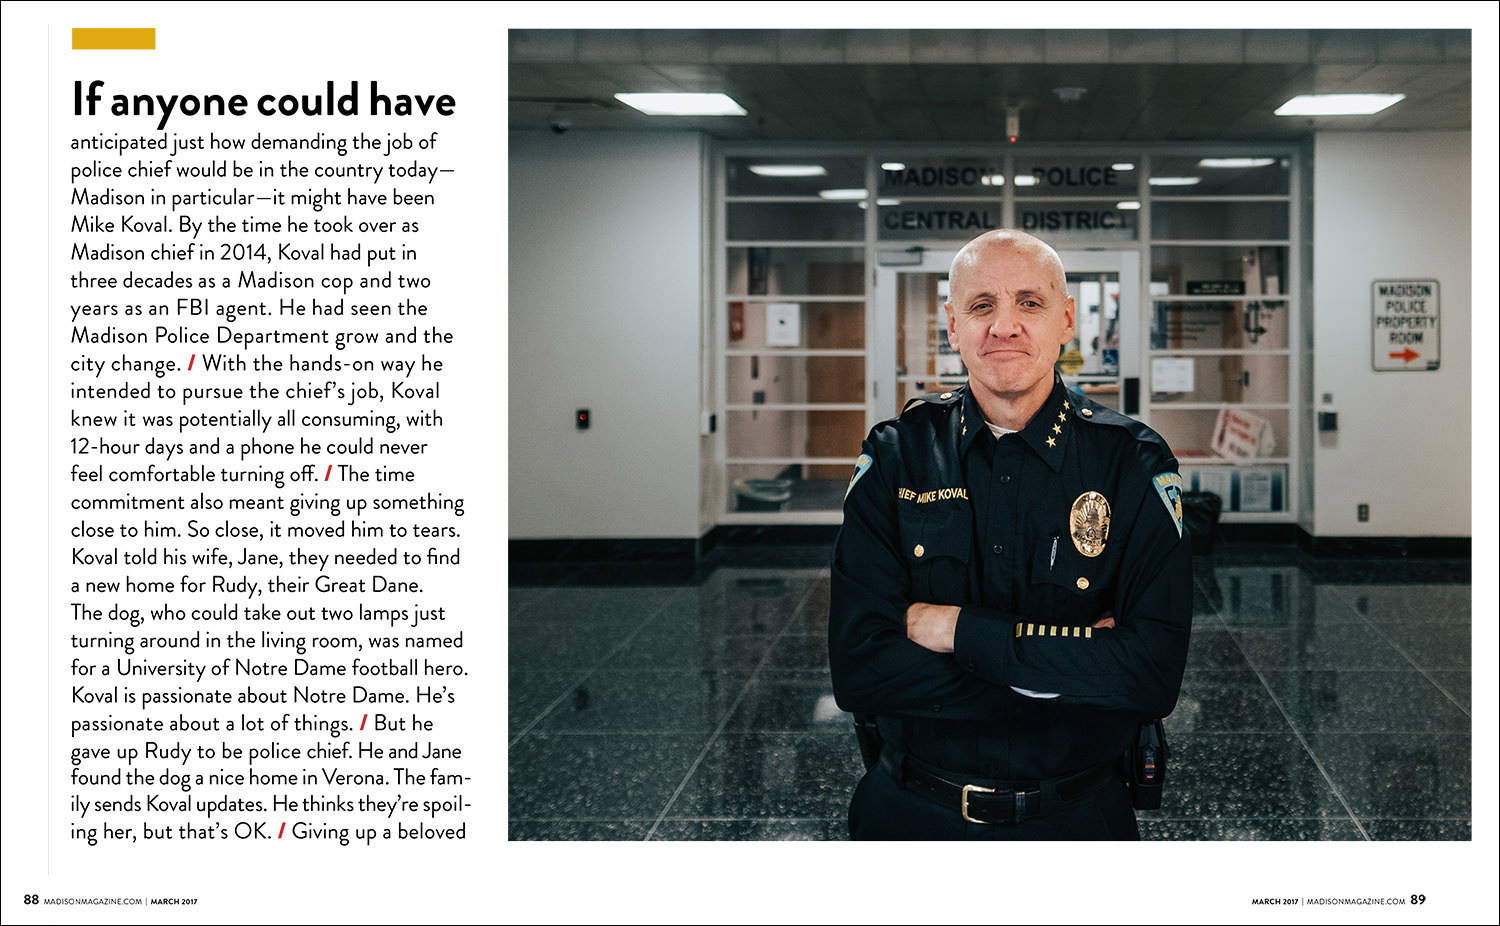 editorial photography tear sheet from magazine showing portrait of Madison police chief Mike Koval at the Madison Police Department entrance